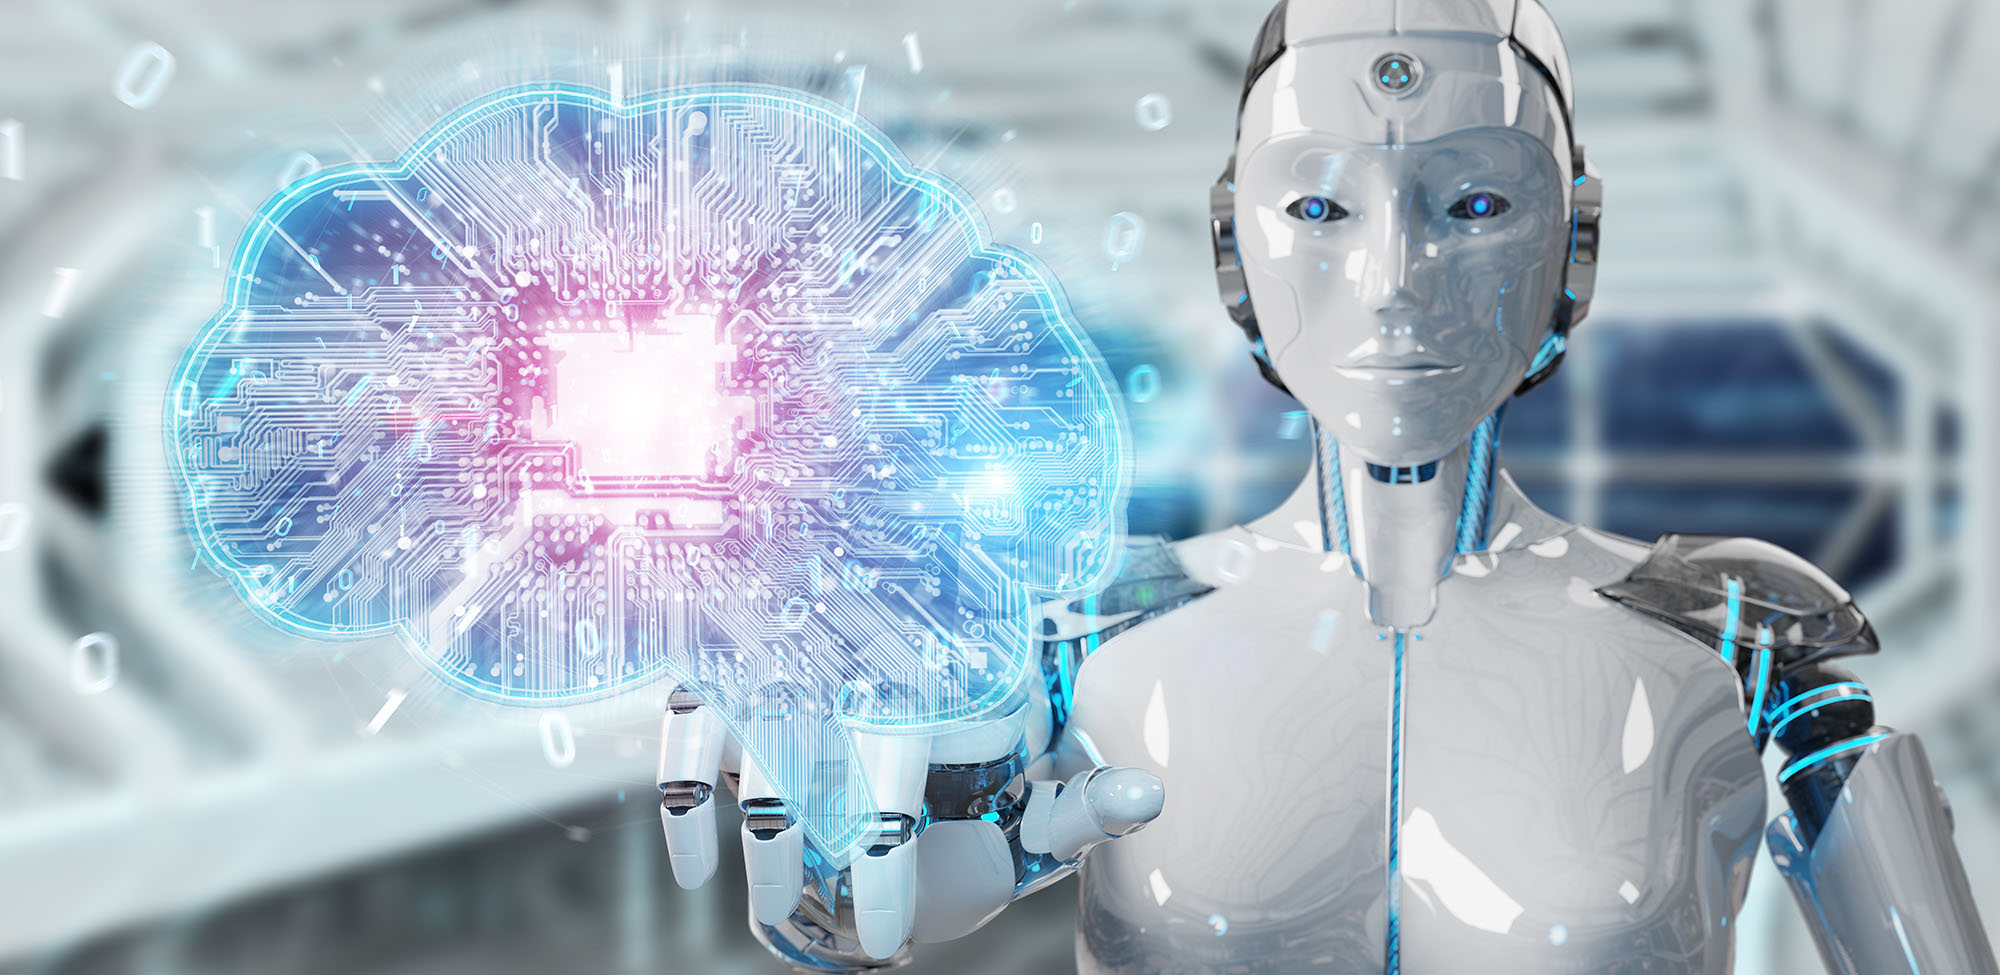 Artificial Intelligence Leads The Future